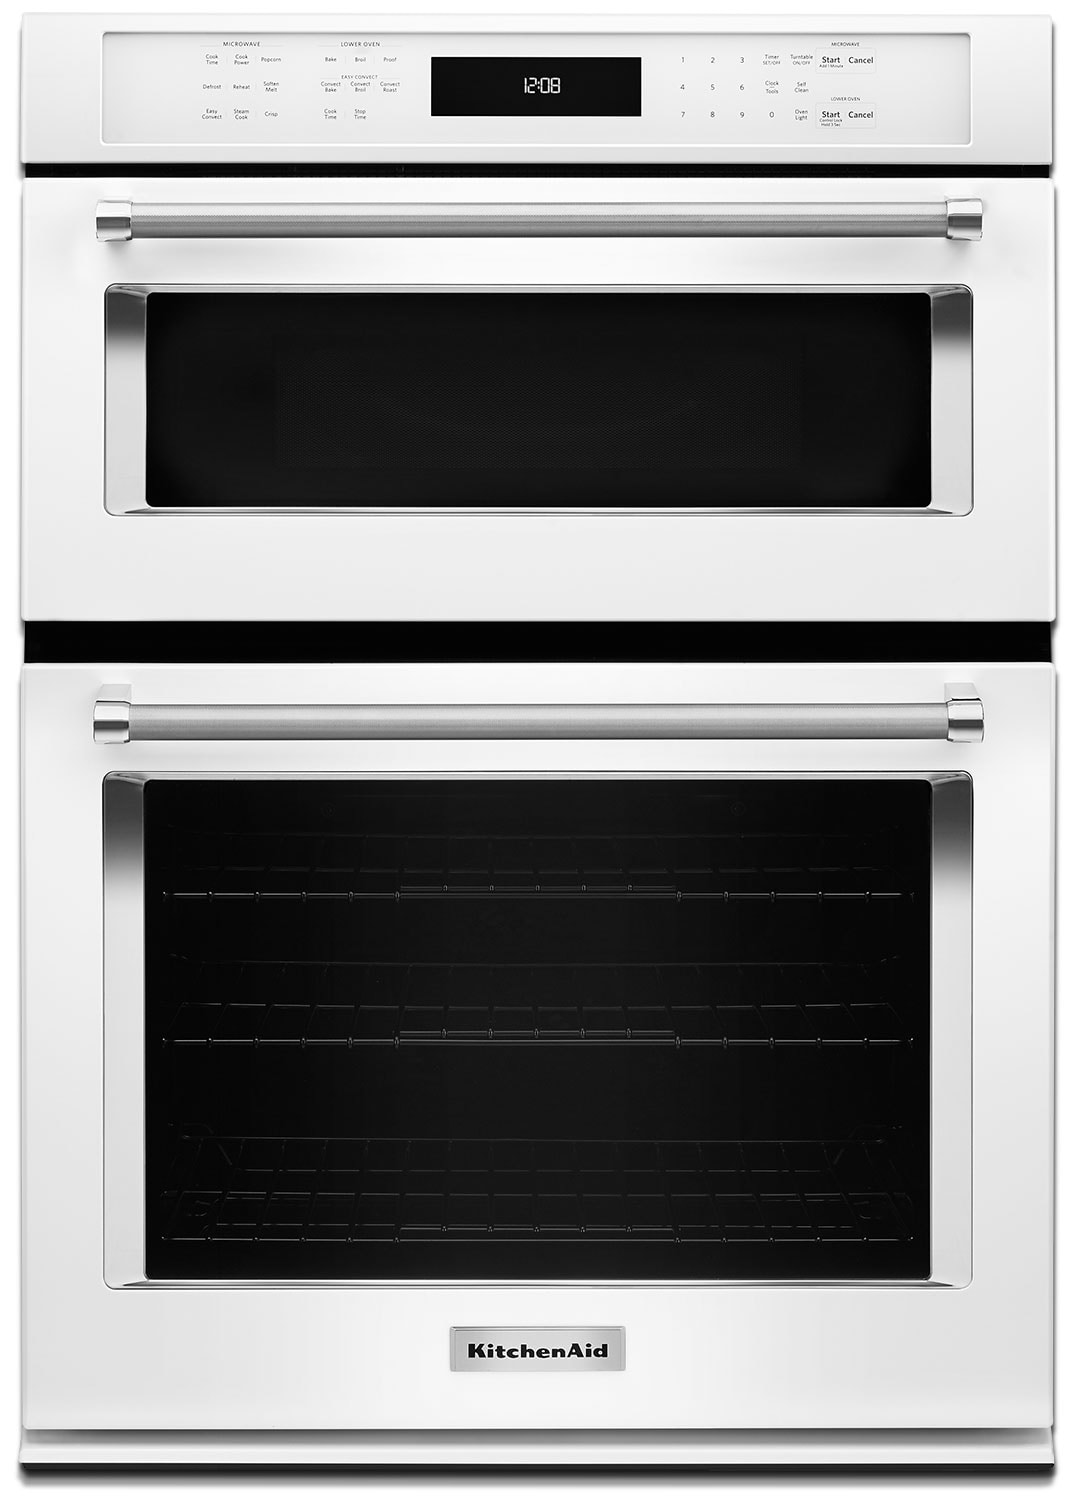 "KitchenAid 30"" Double Wall Oven with Microwave and Conventional Oven - White"